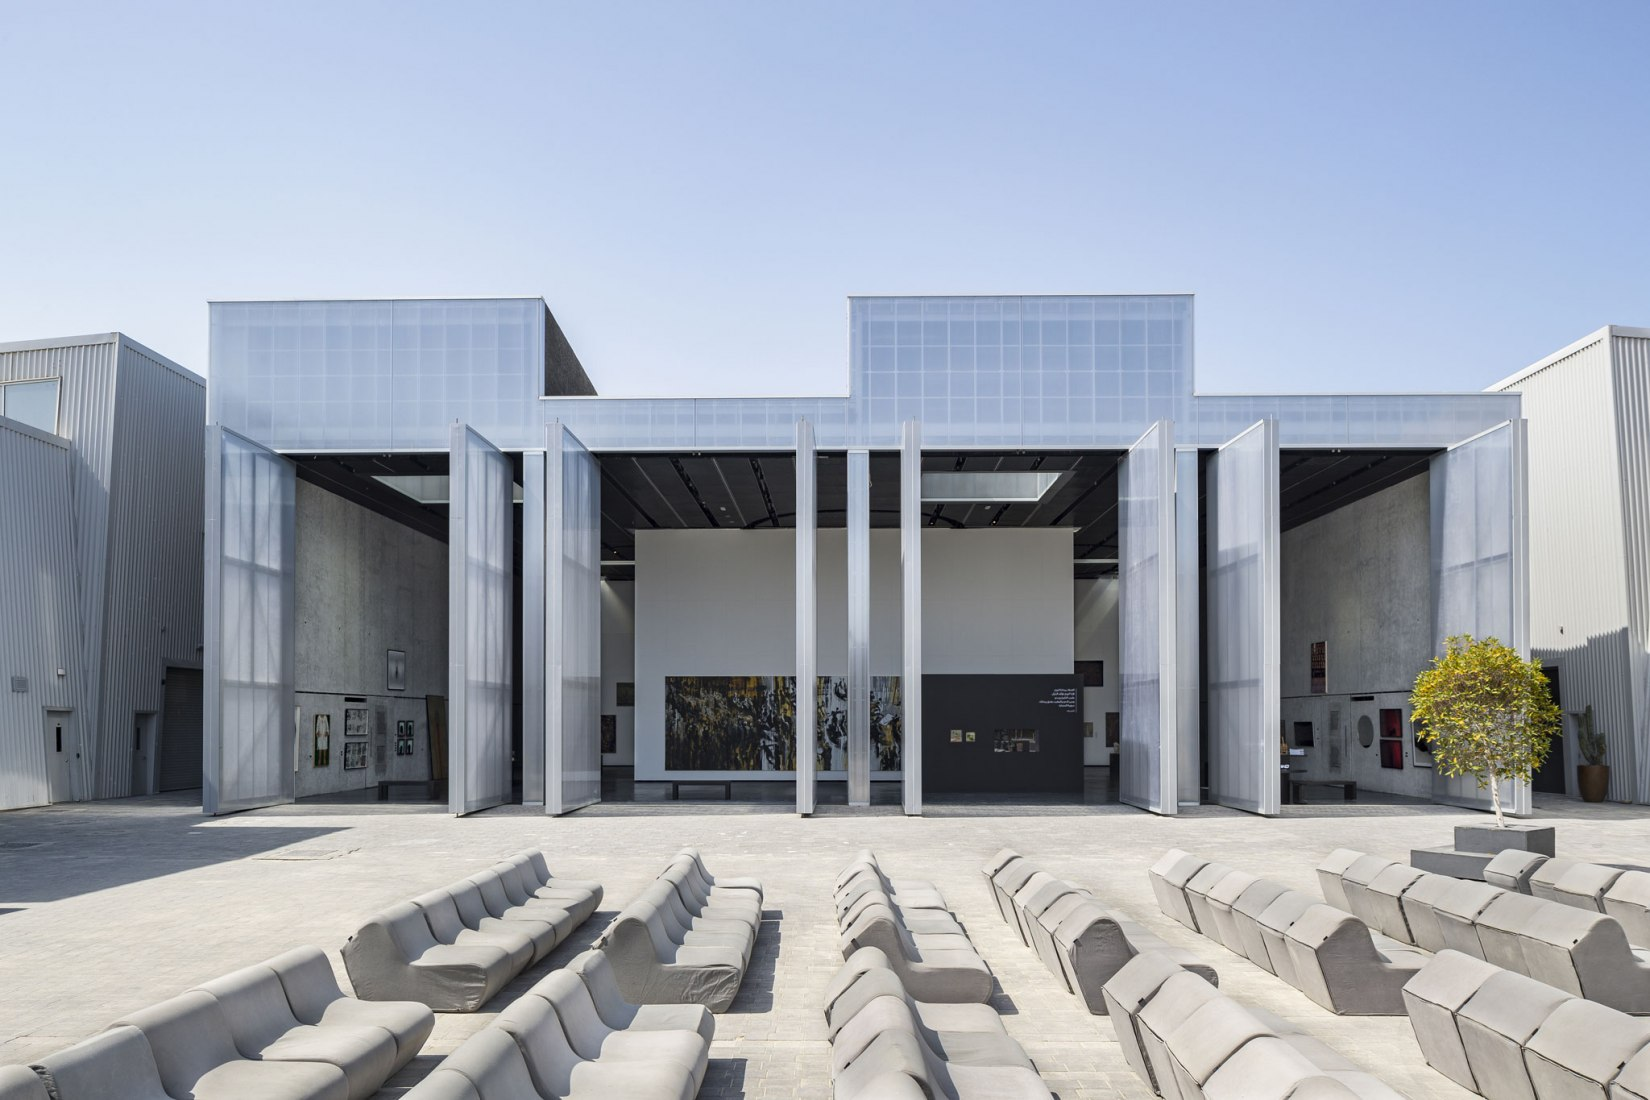 Courtyard with open doors. Concrete by OMA. Photograph © Aga Khan Trust for Culture / Cemal Emden.